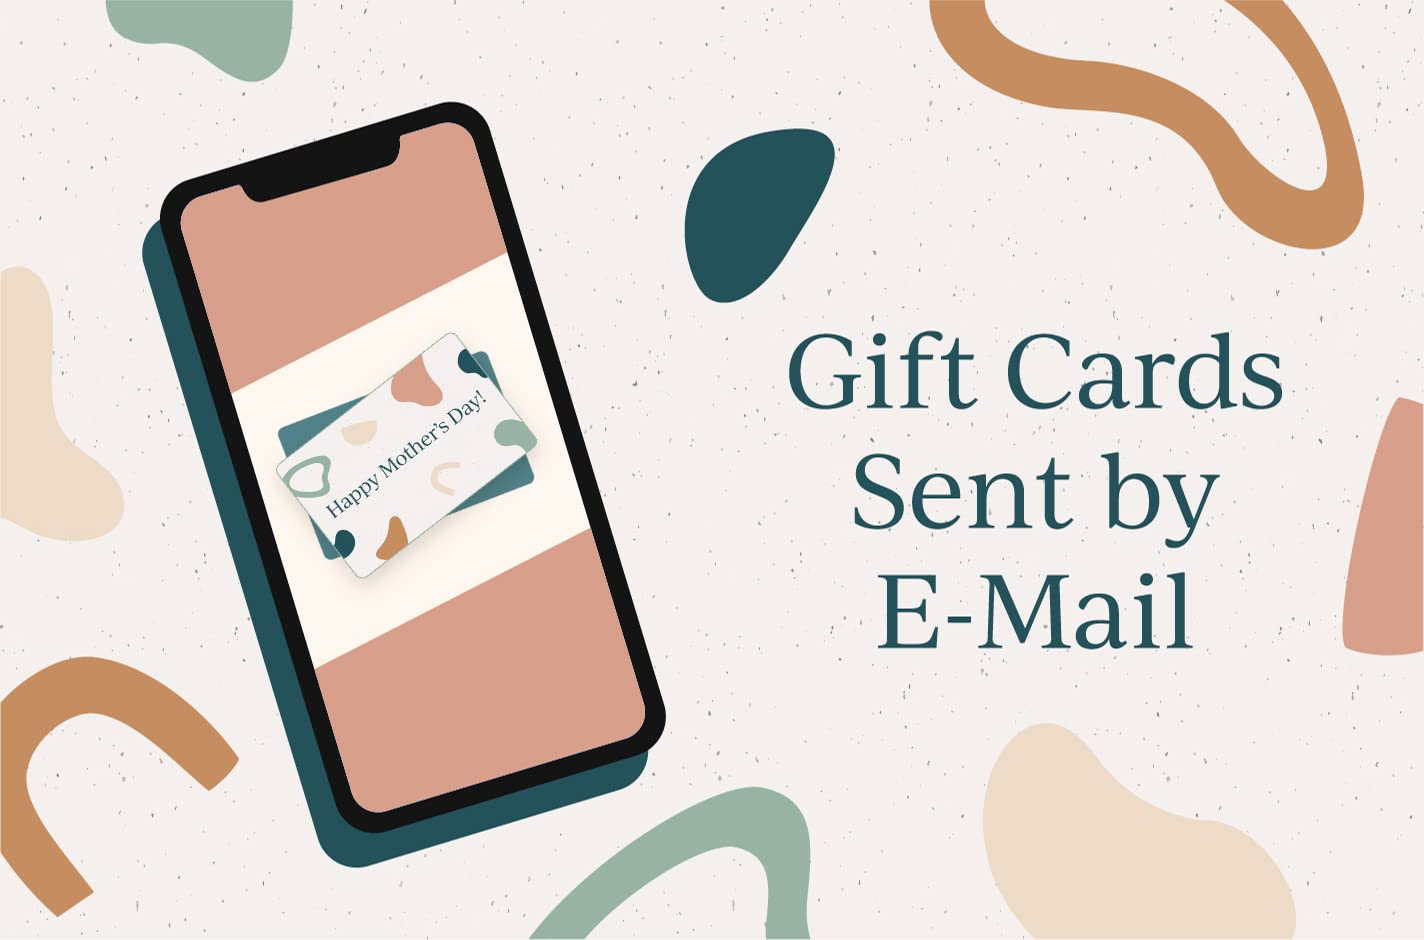 Link to Purchase digital e-gift card. Image links to purchase page for e-gift card.